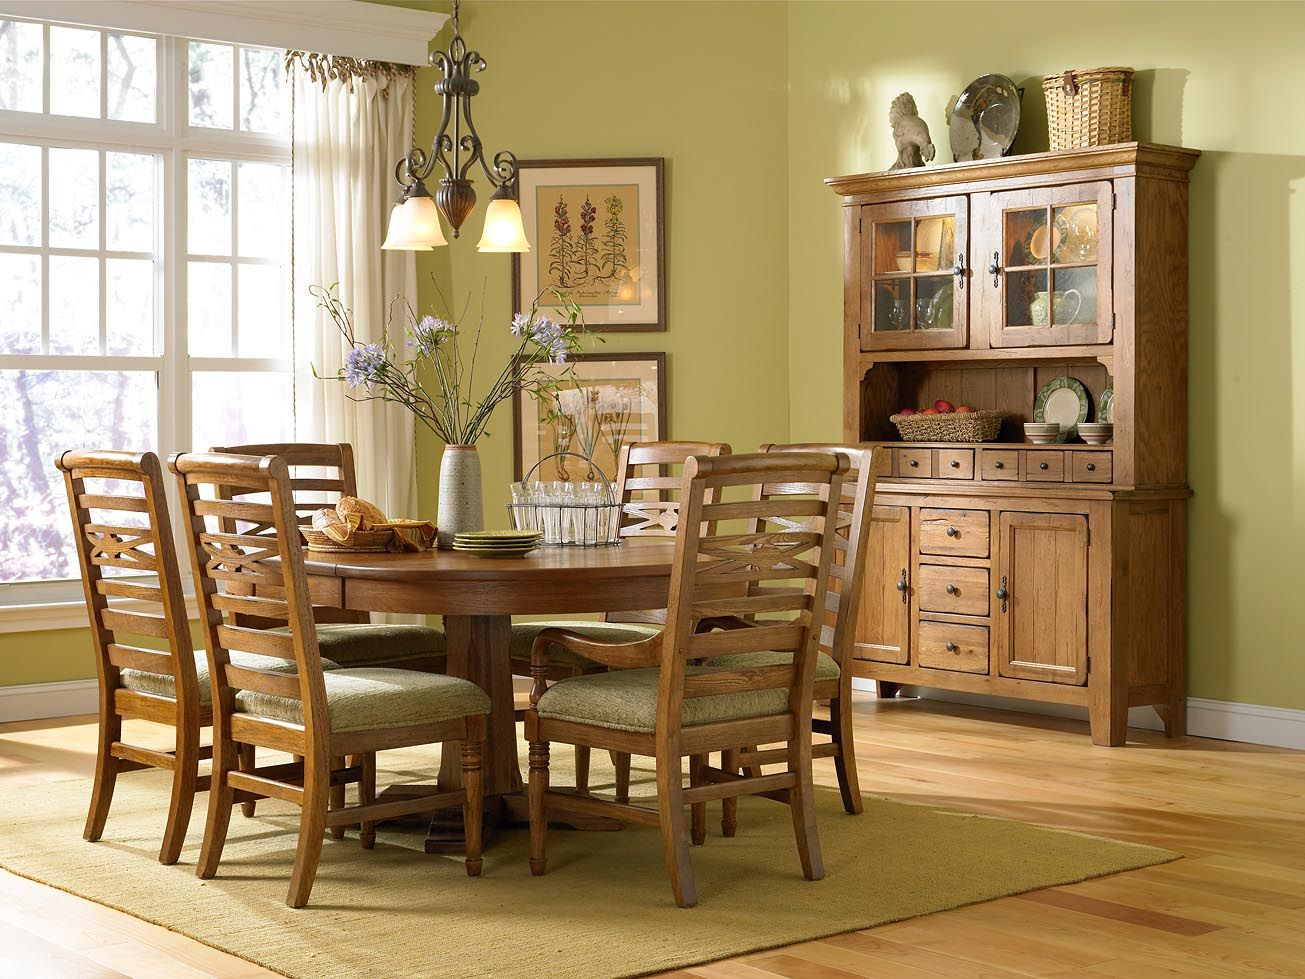 Attic Heirlooms 9 Piece Dining Set by Broyhill Furniture - Darvin ...